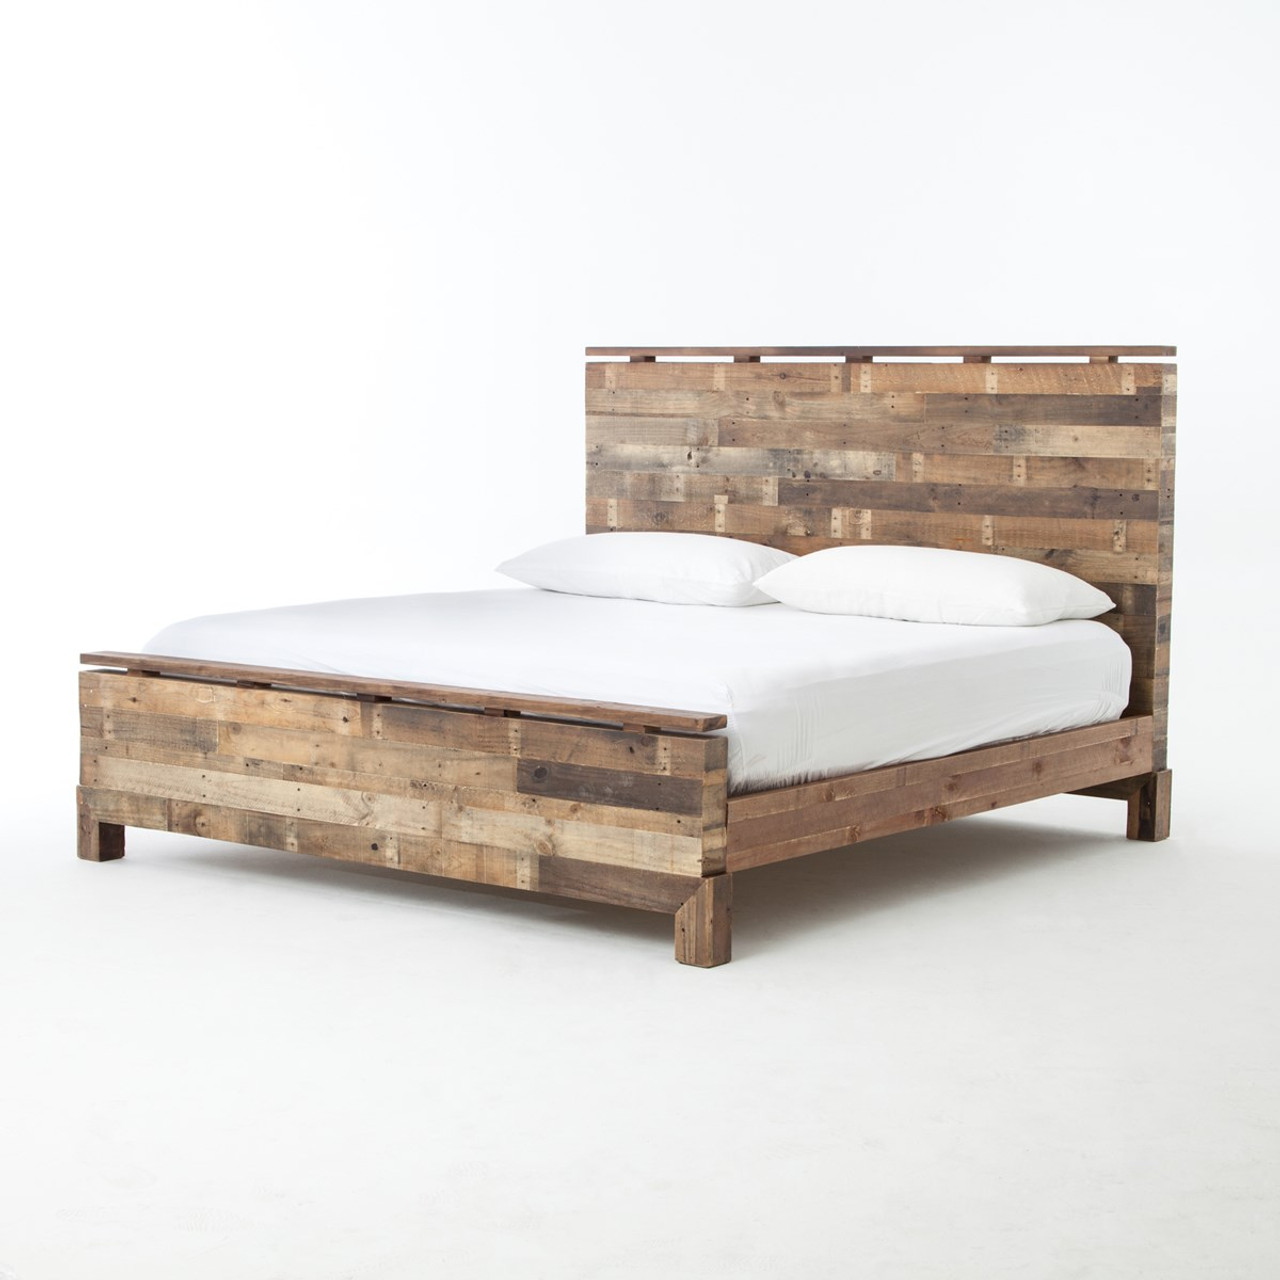 Angora rustic reclaimed wood king size platform bed zin home Wood platform bed